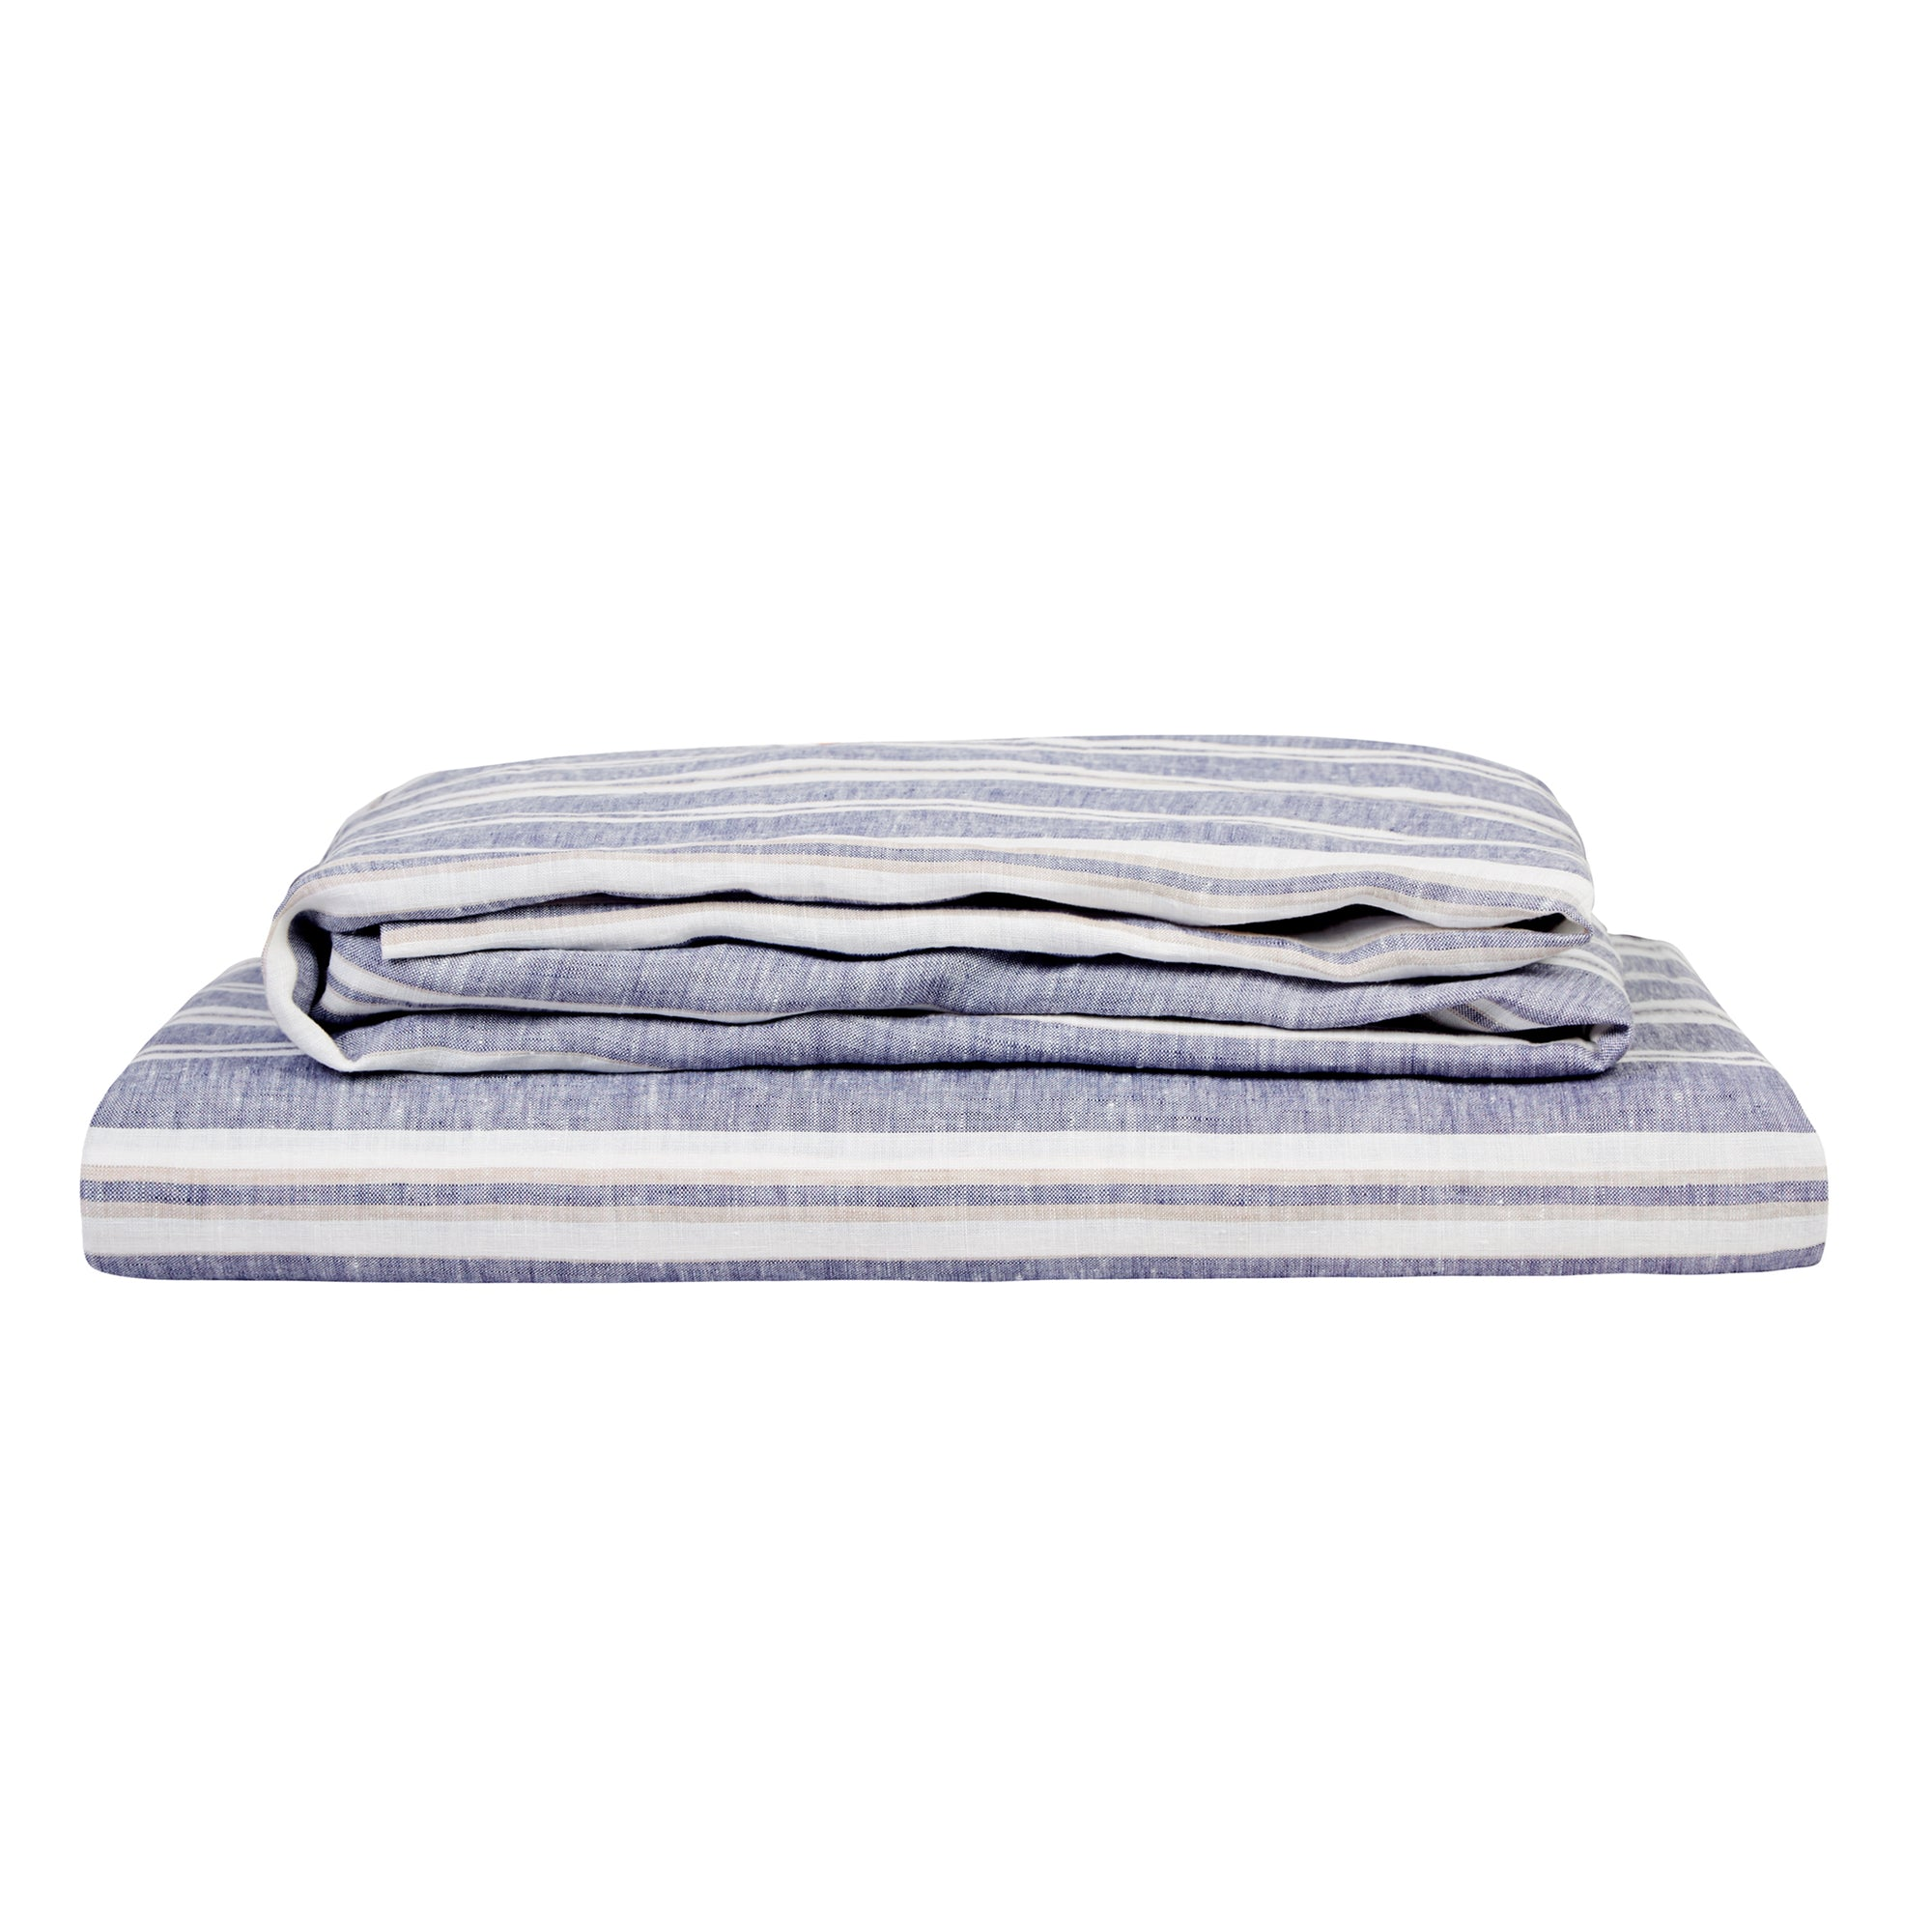 100% LINEN SHEET SET - VINTAGE MUSCAT STRIPE. - TOW AND LINE